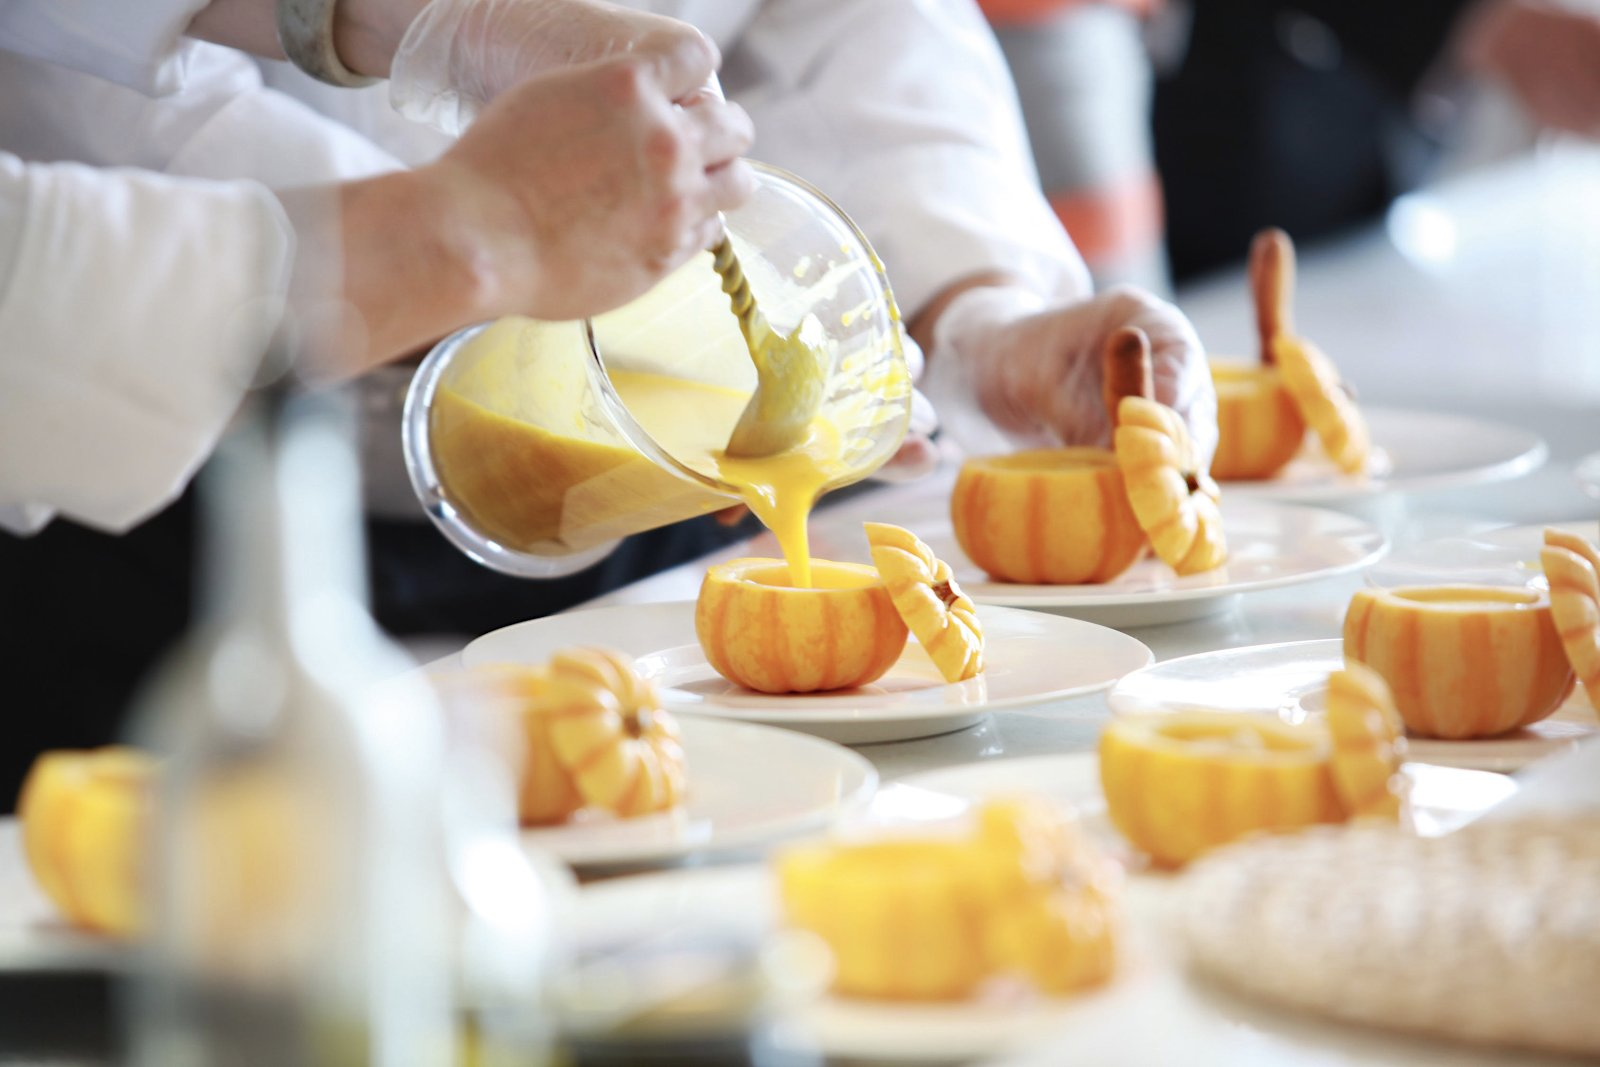 Prep cook job description: Chef pours liquid into small pumpkin